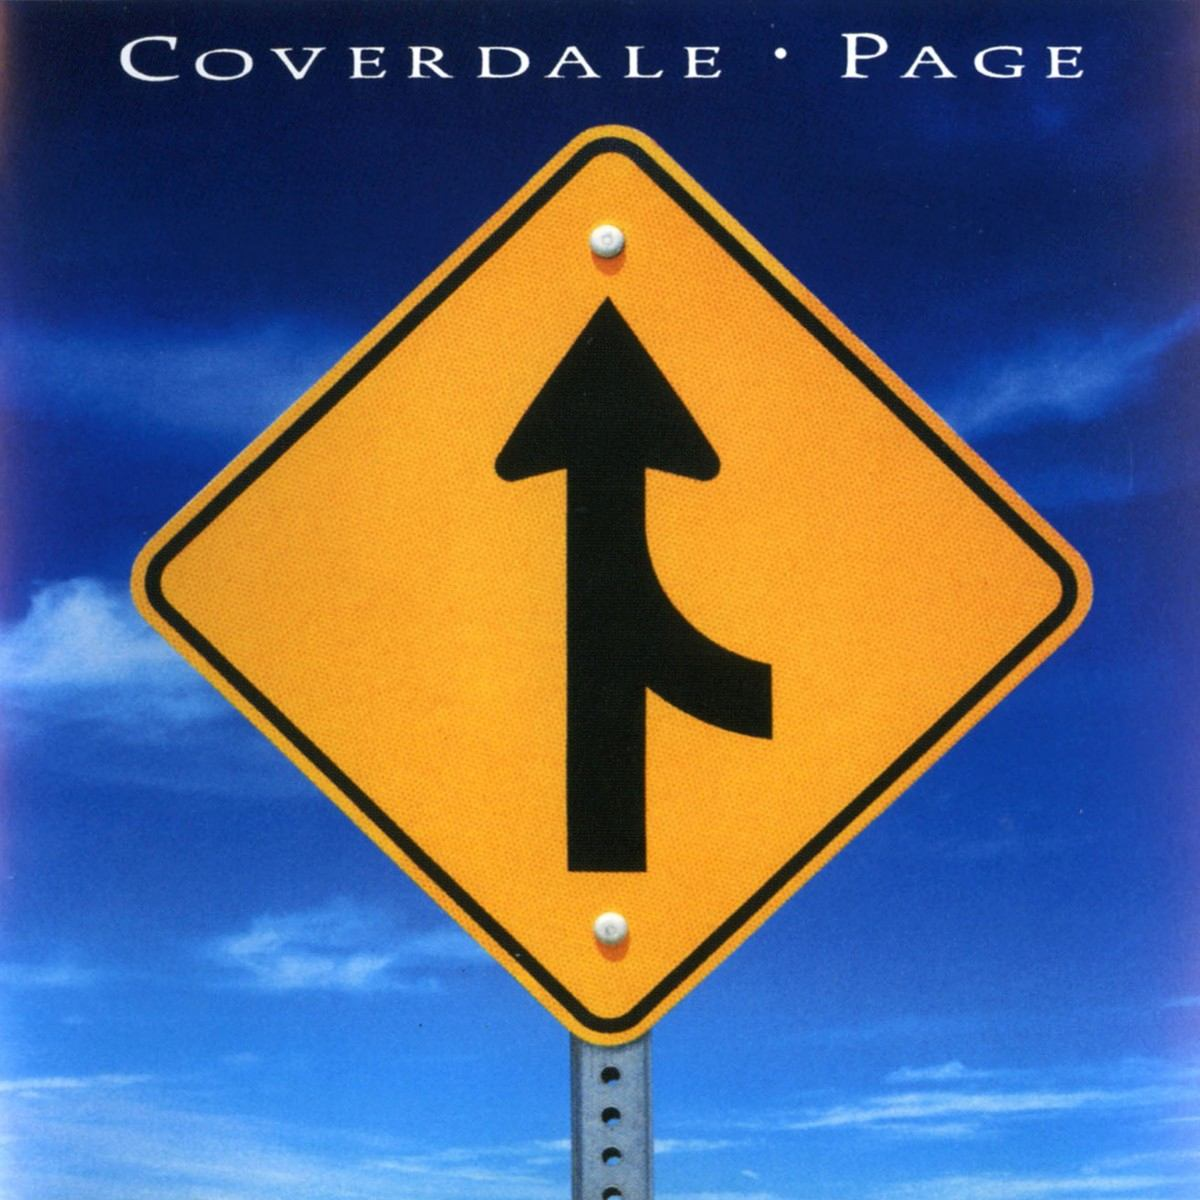 coverdale-page-1993-14313-MLB4080292013_